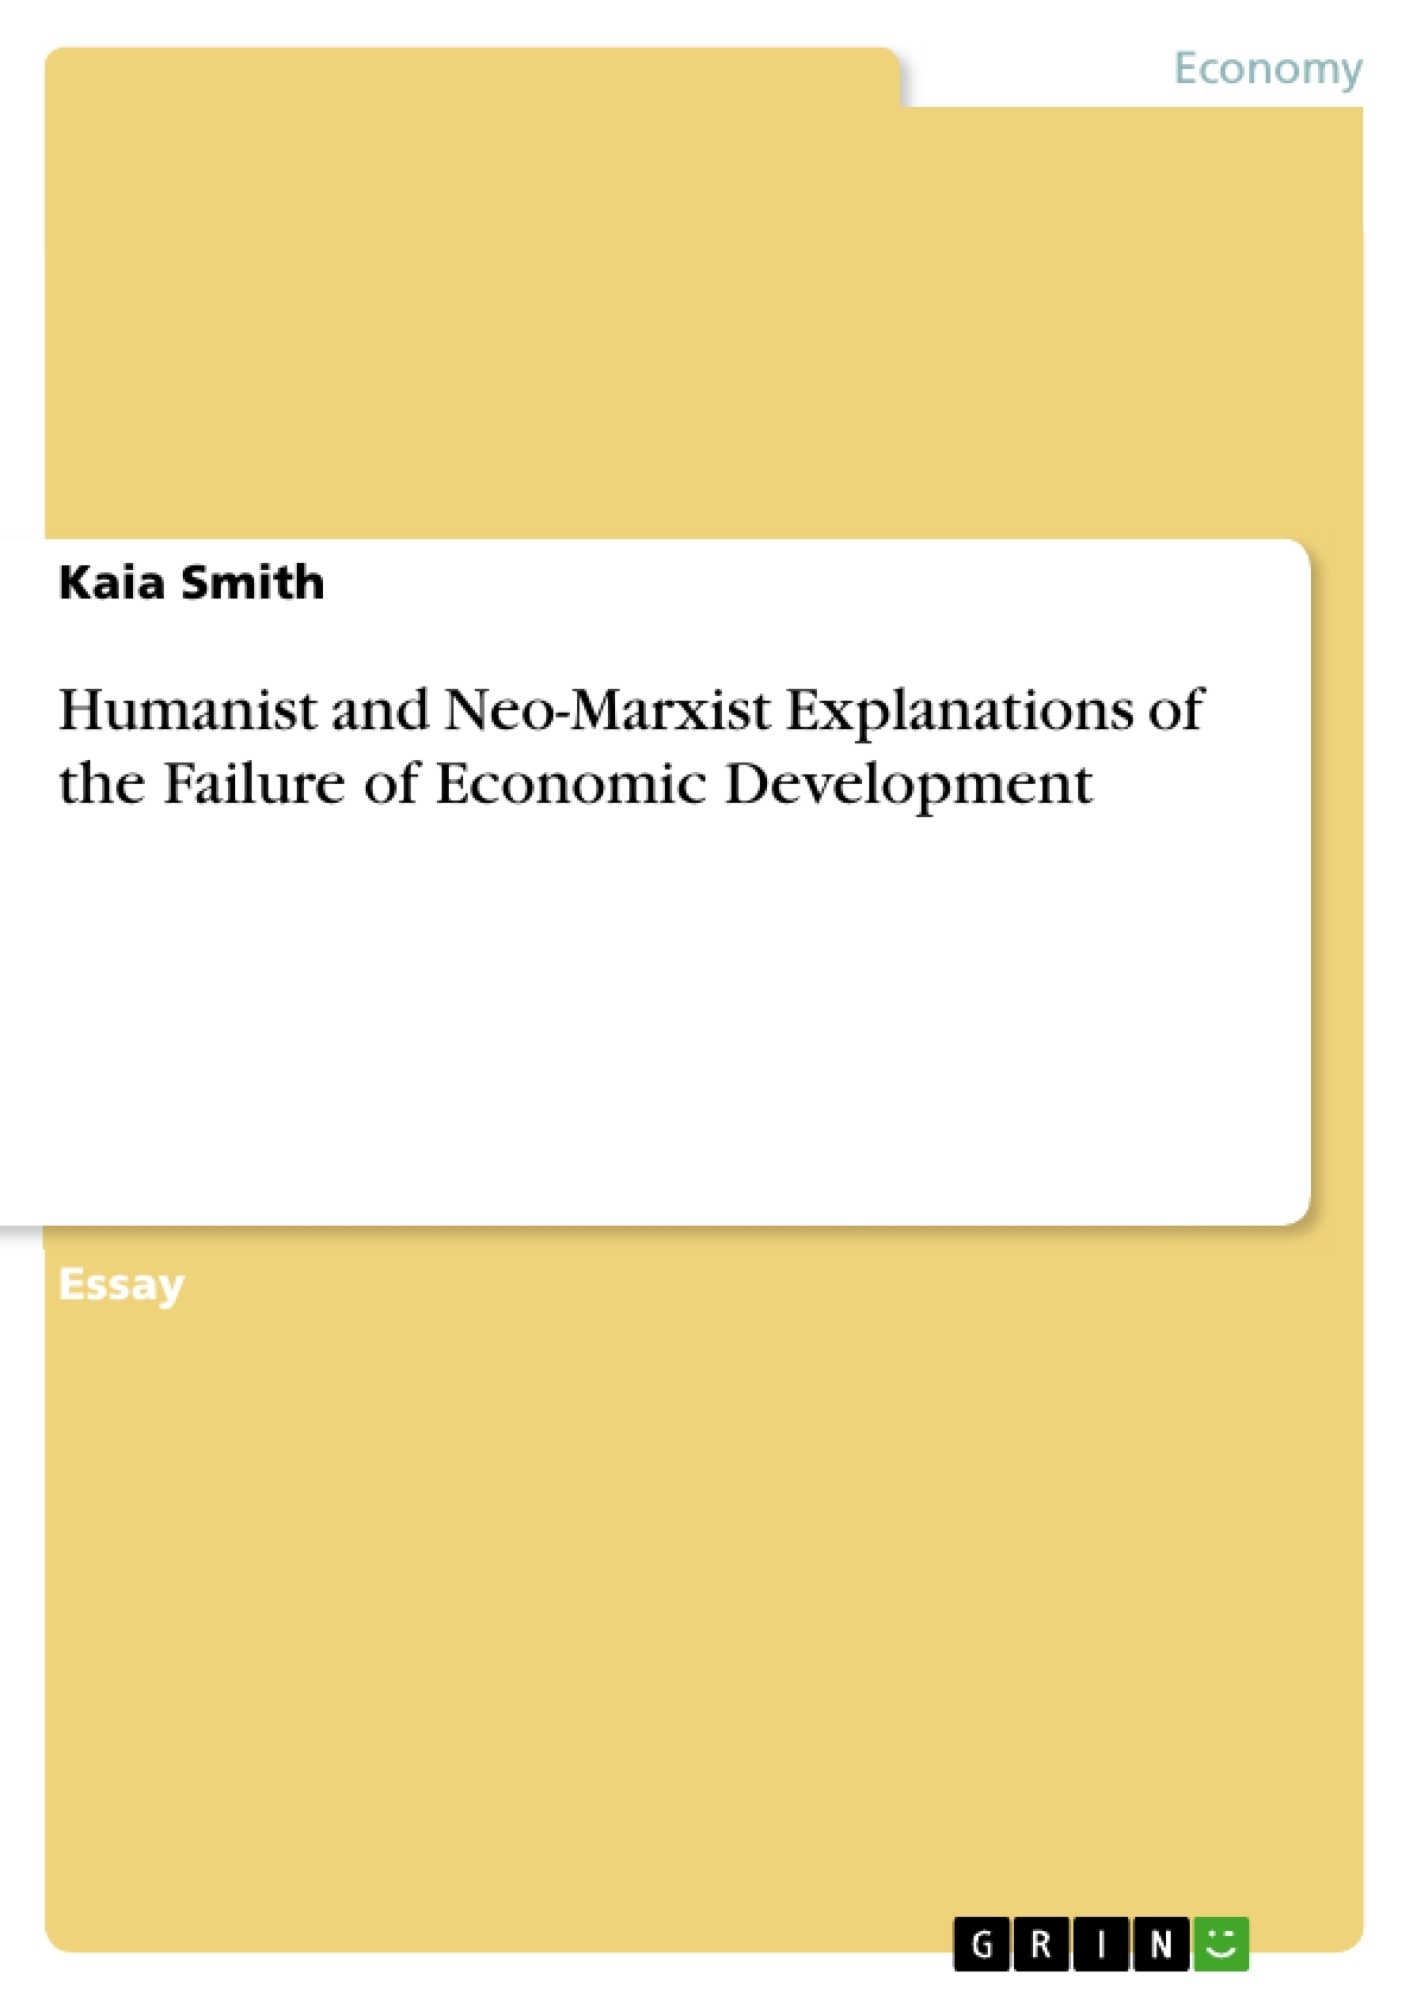 Title: Humanist and Neo-Marxist Explanations of the Failure of Economic Development